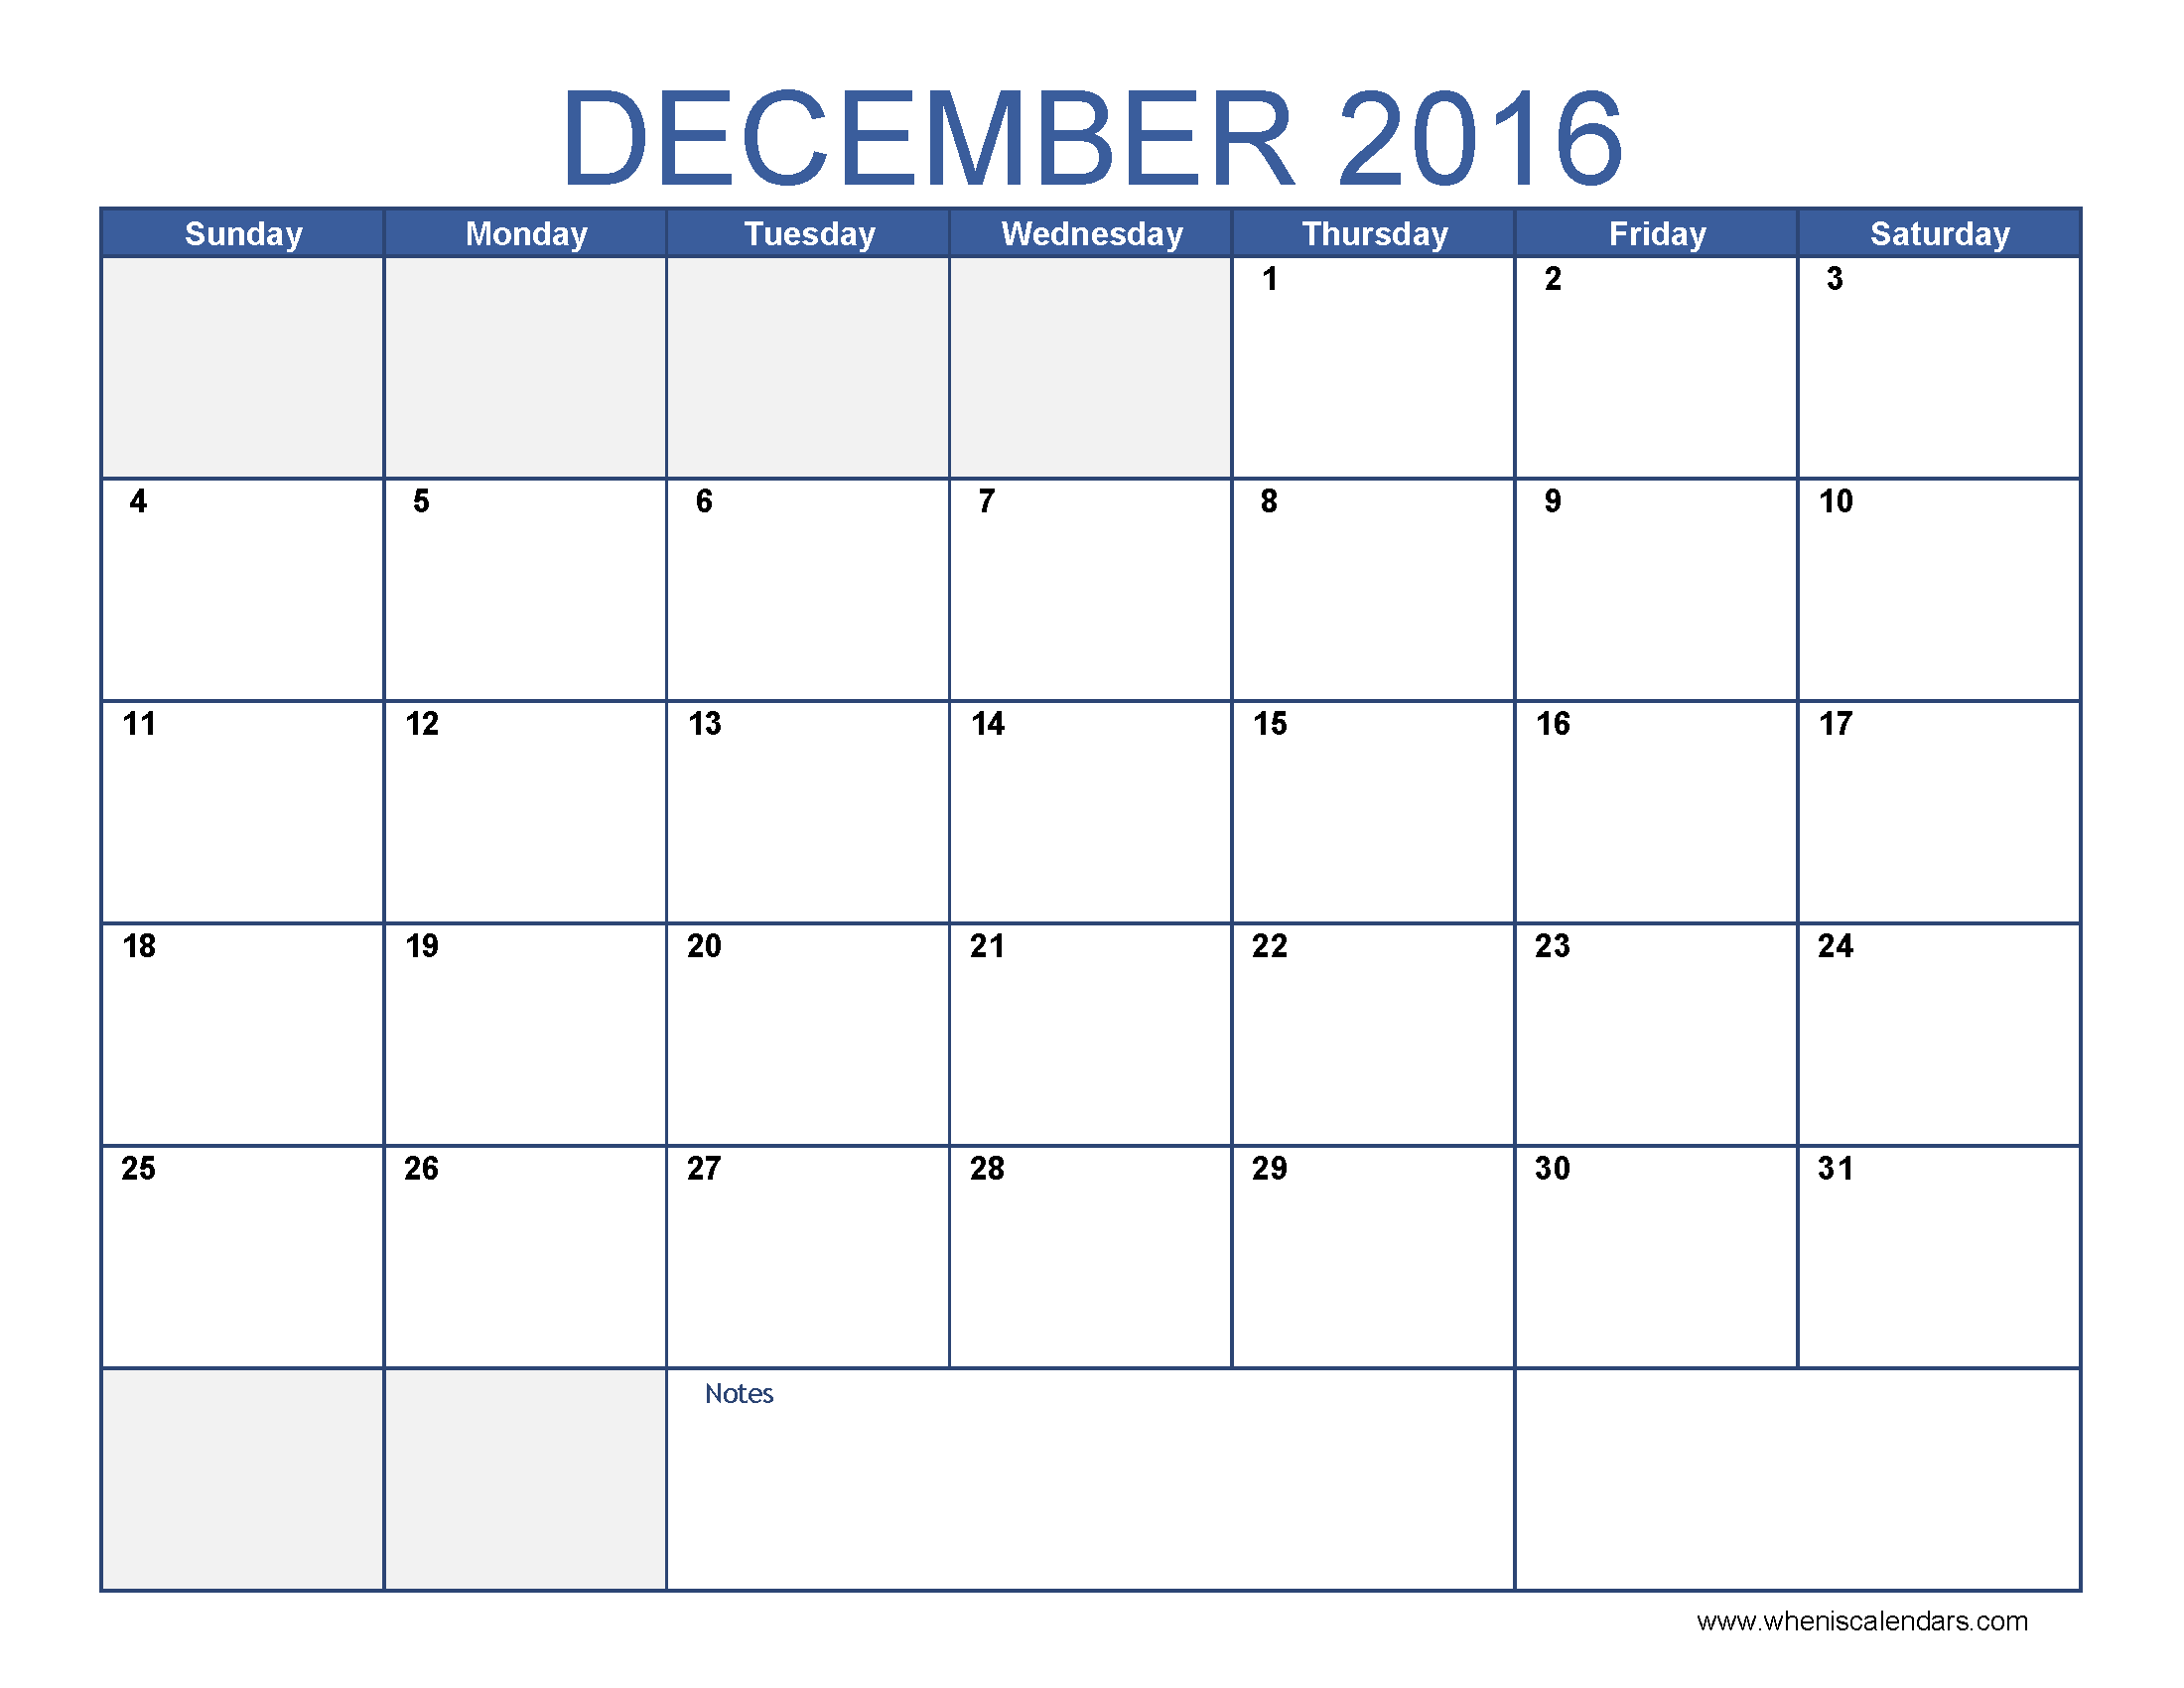 December Calendar 2016 Printable Pdf : Blank december calendar templates printable word pdf